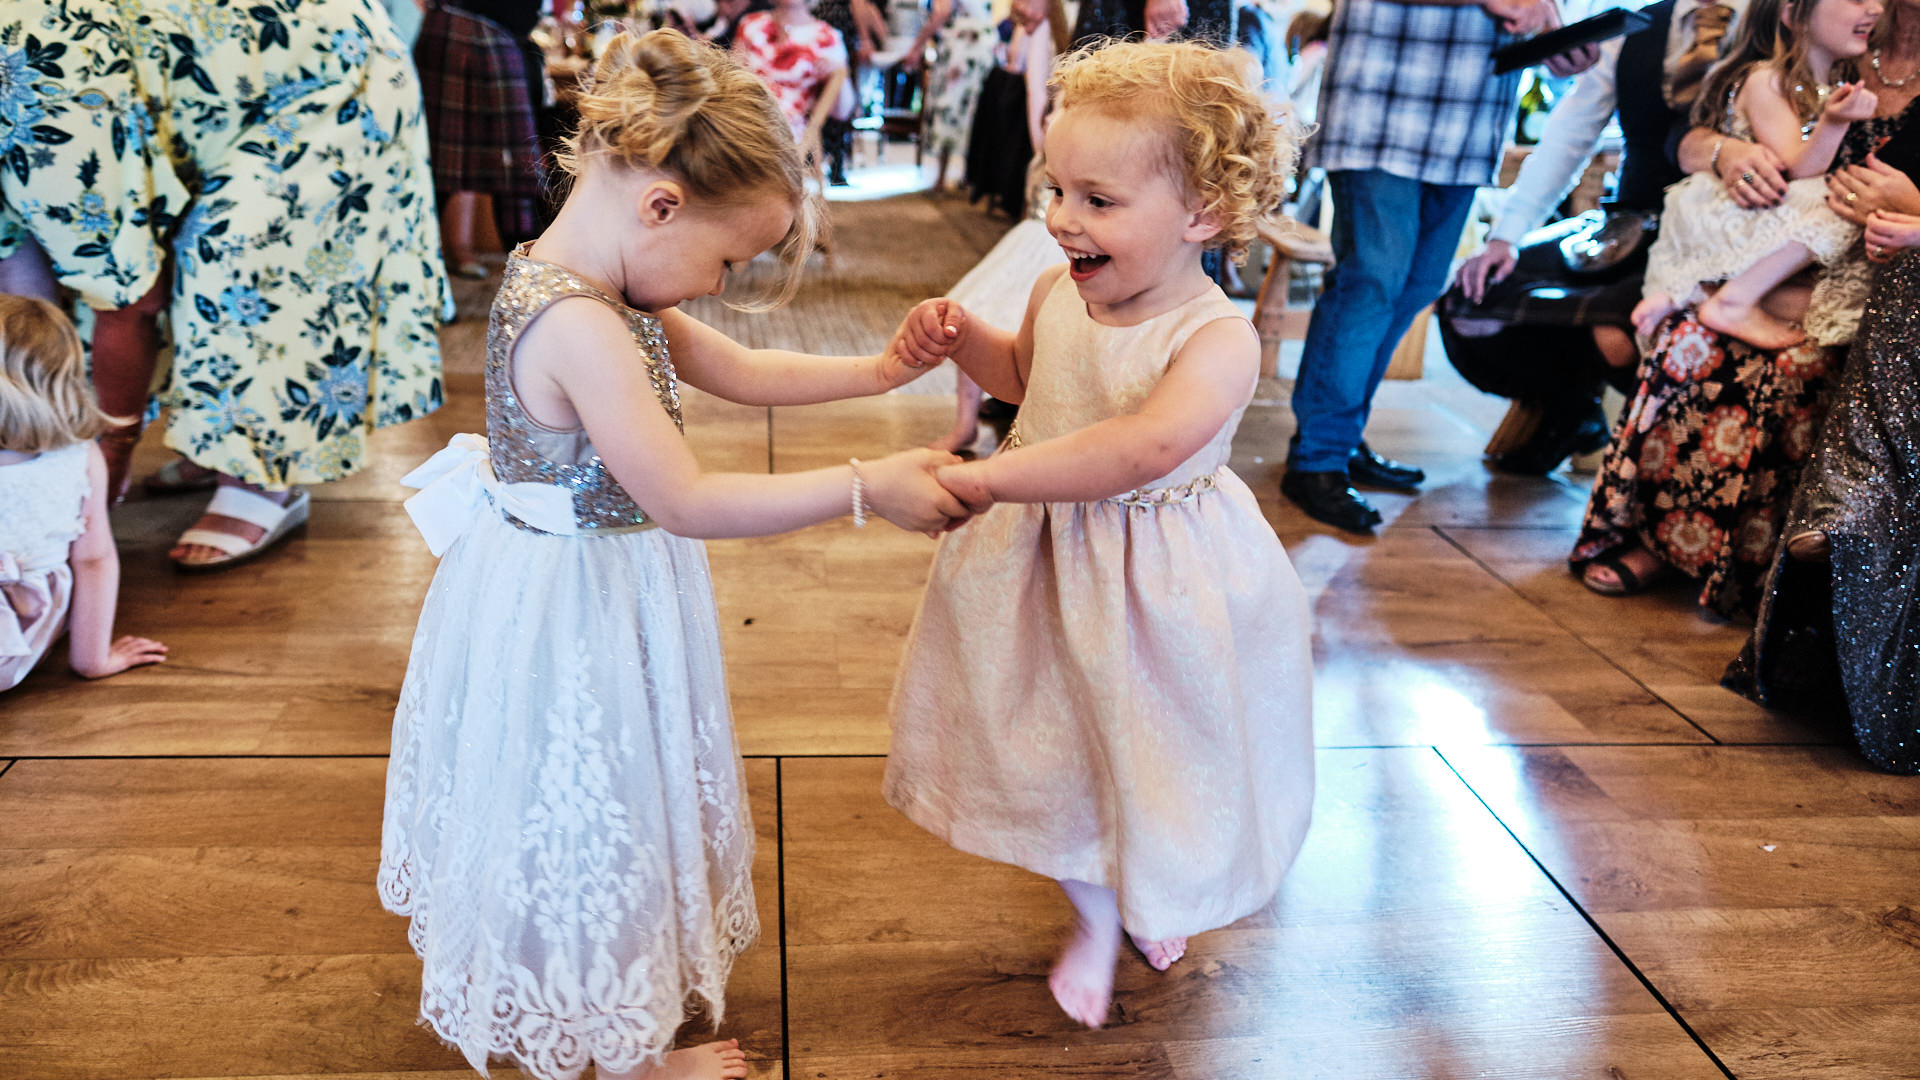 colour photograph of two small girls dancing at a wedding